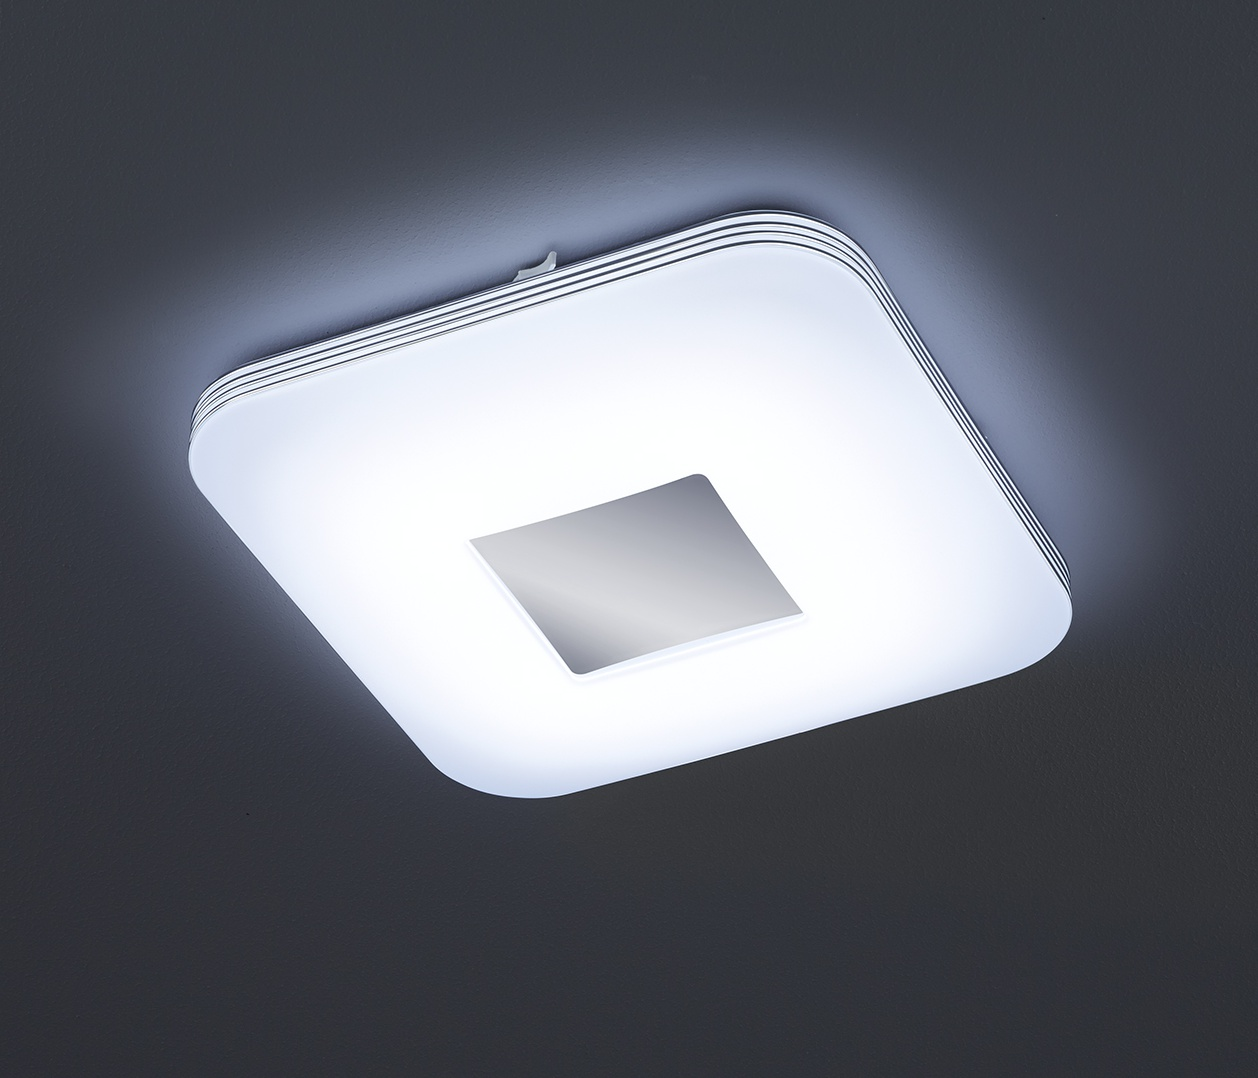 LED-kattovalaisin Venus 330x330x70 mm kromi